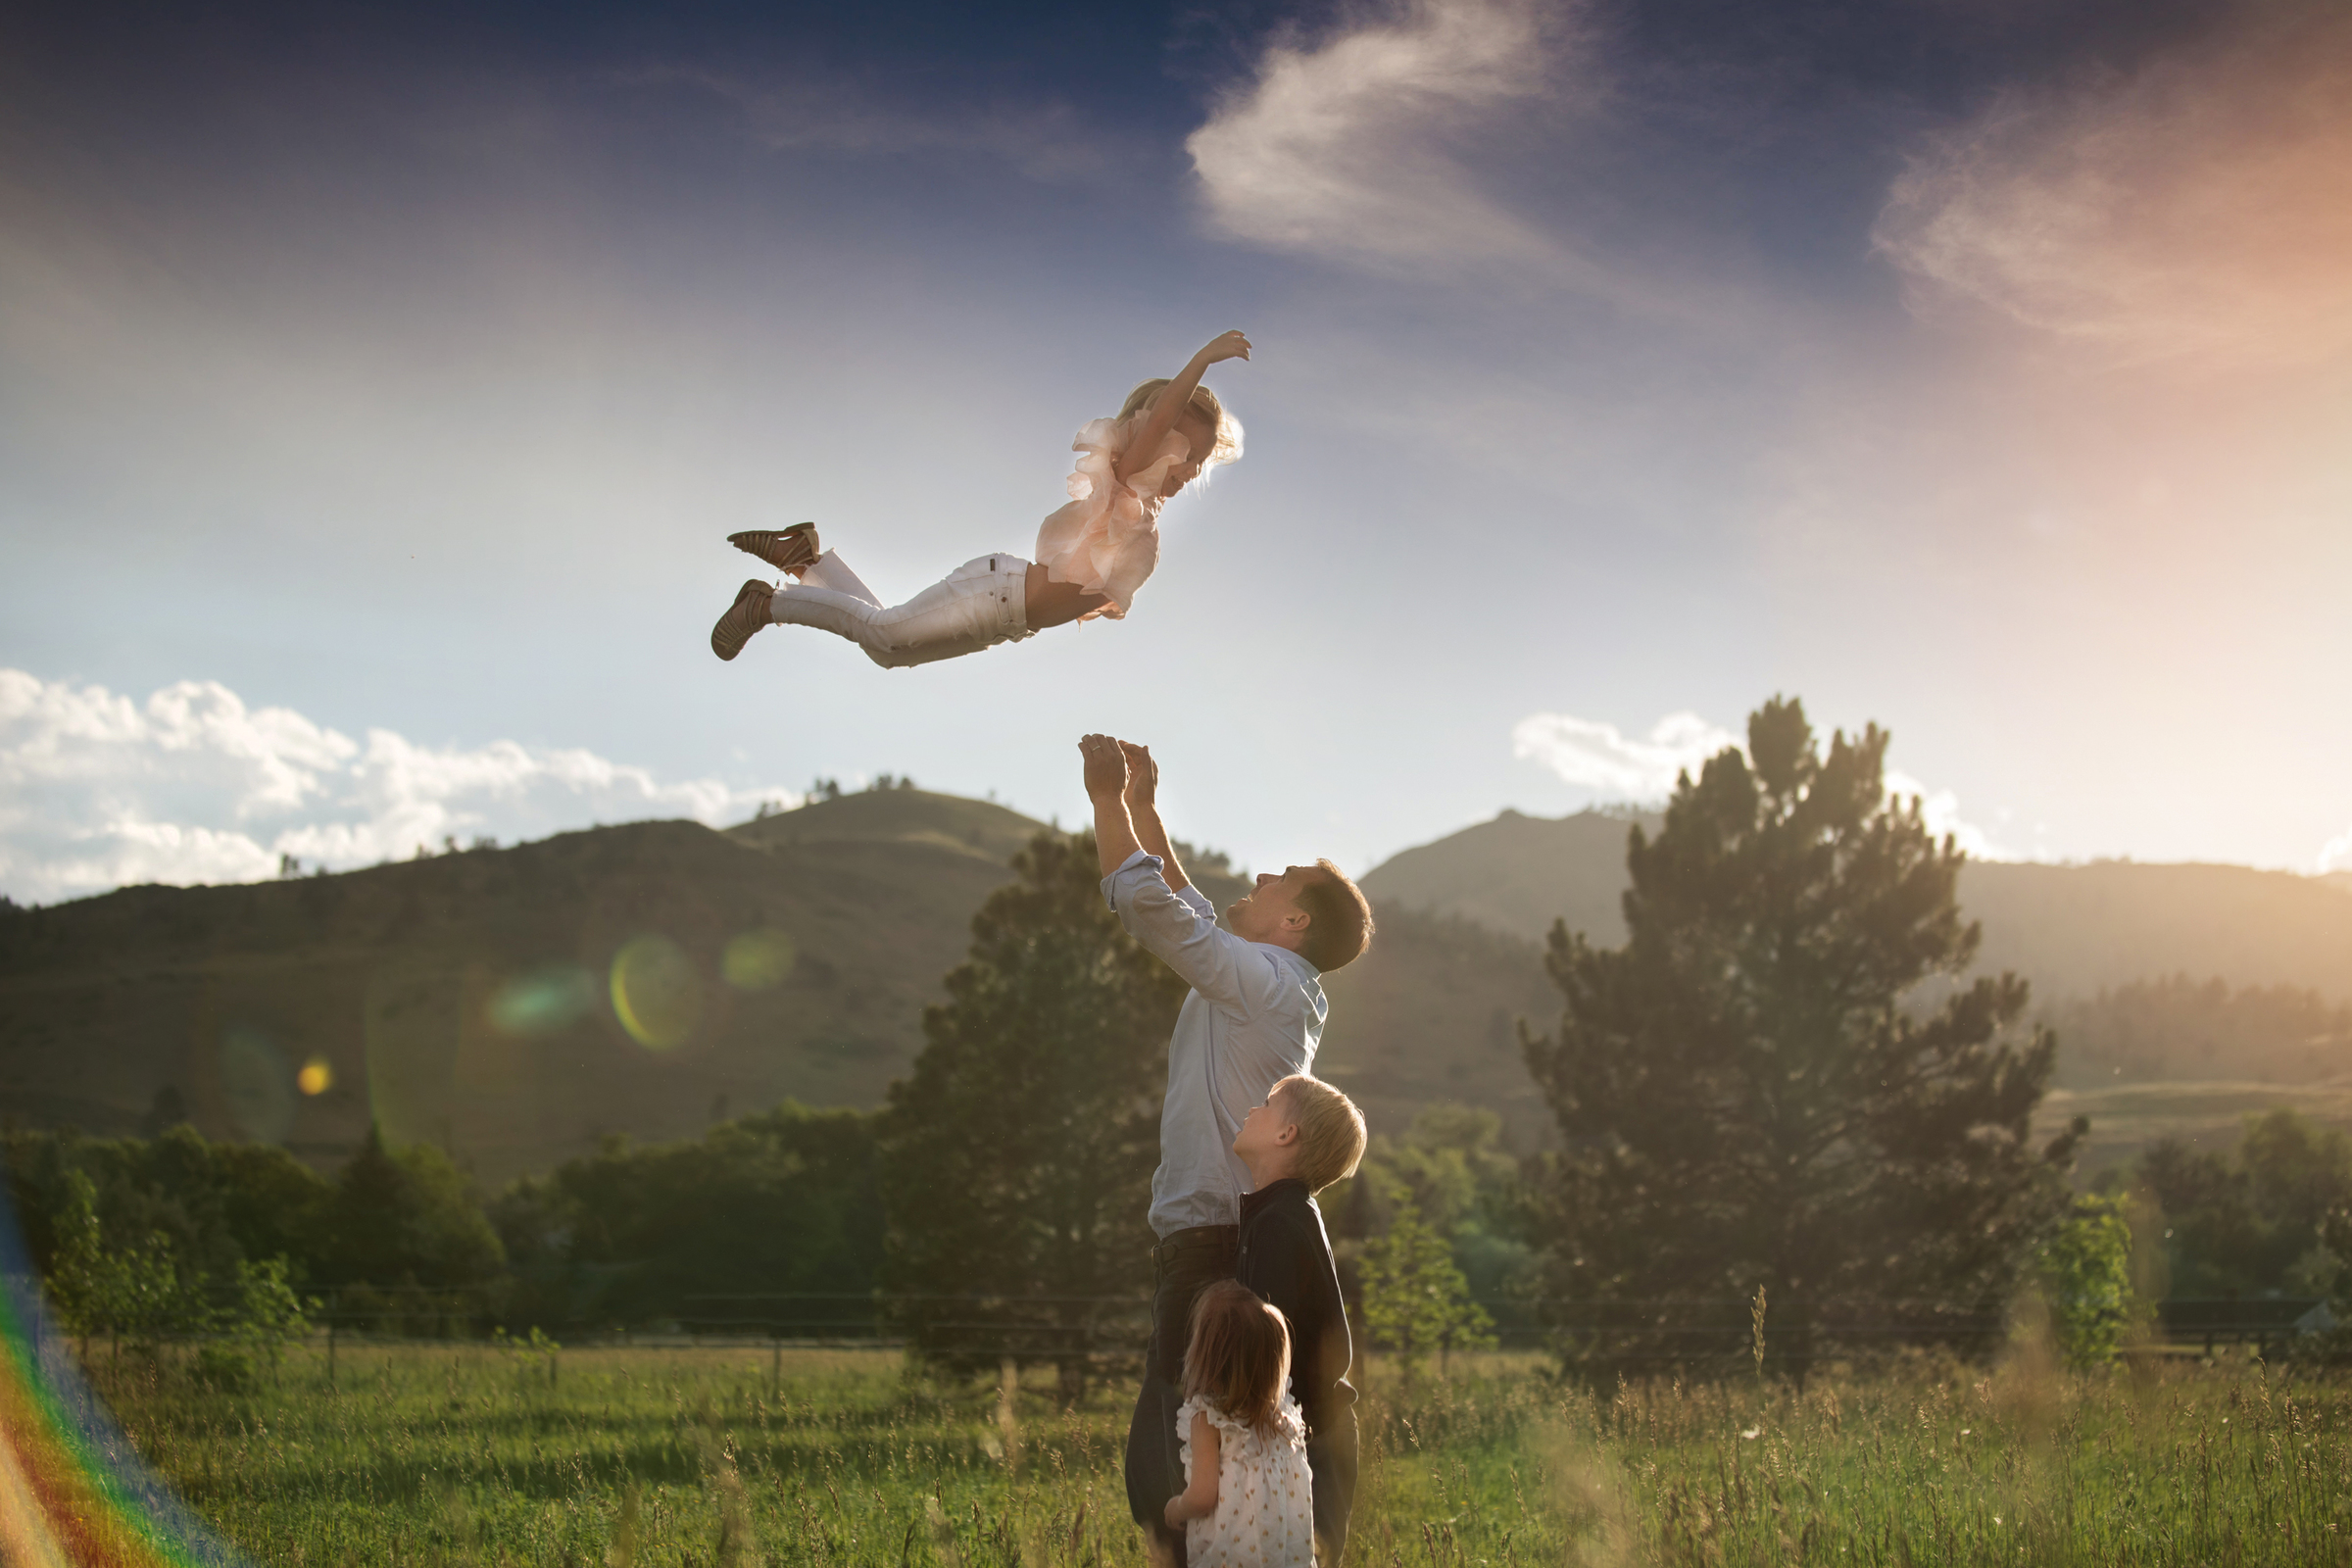 dad throwing child in air as kids look on fathers day d'ann boal